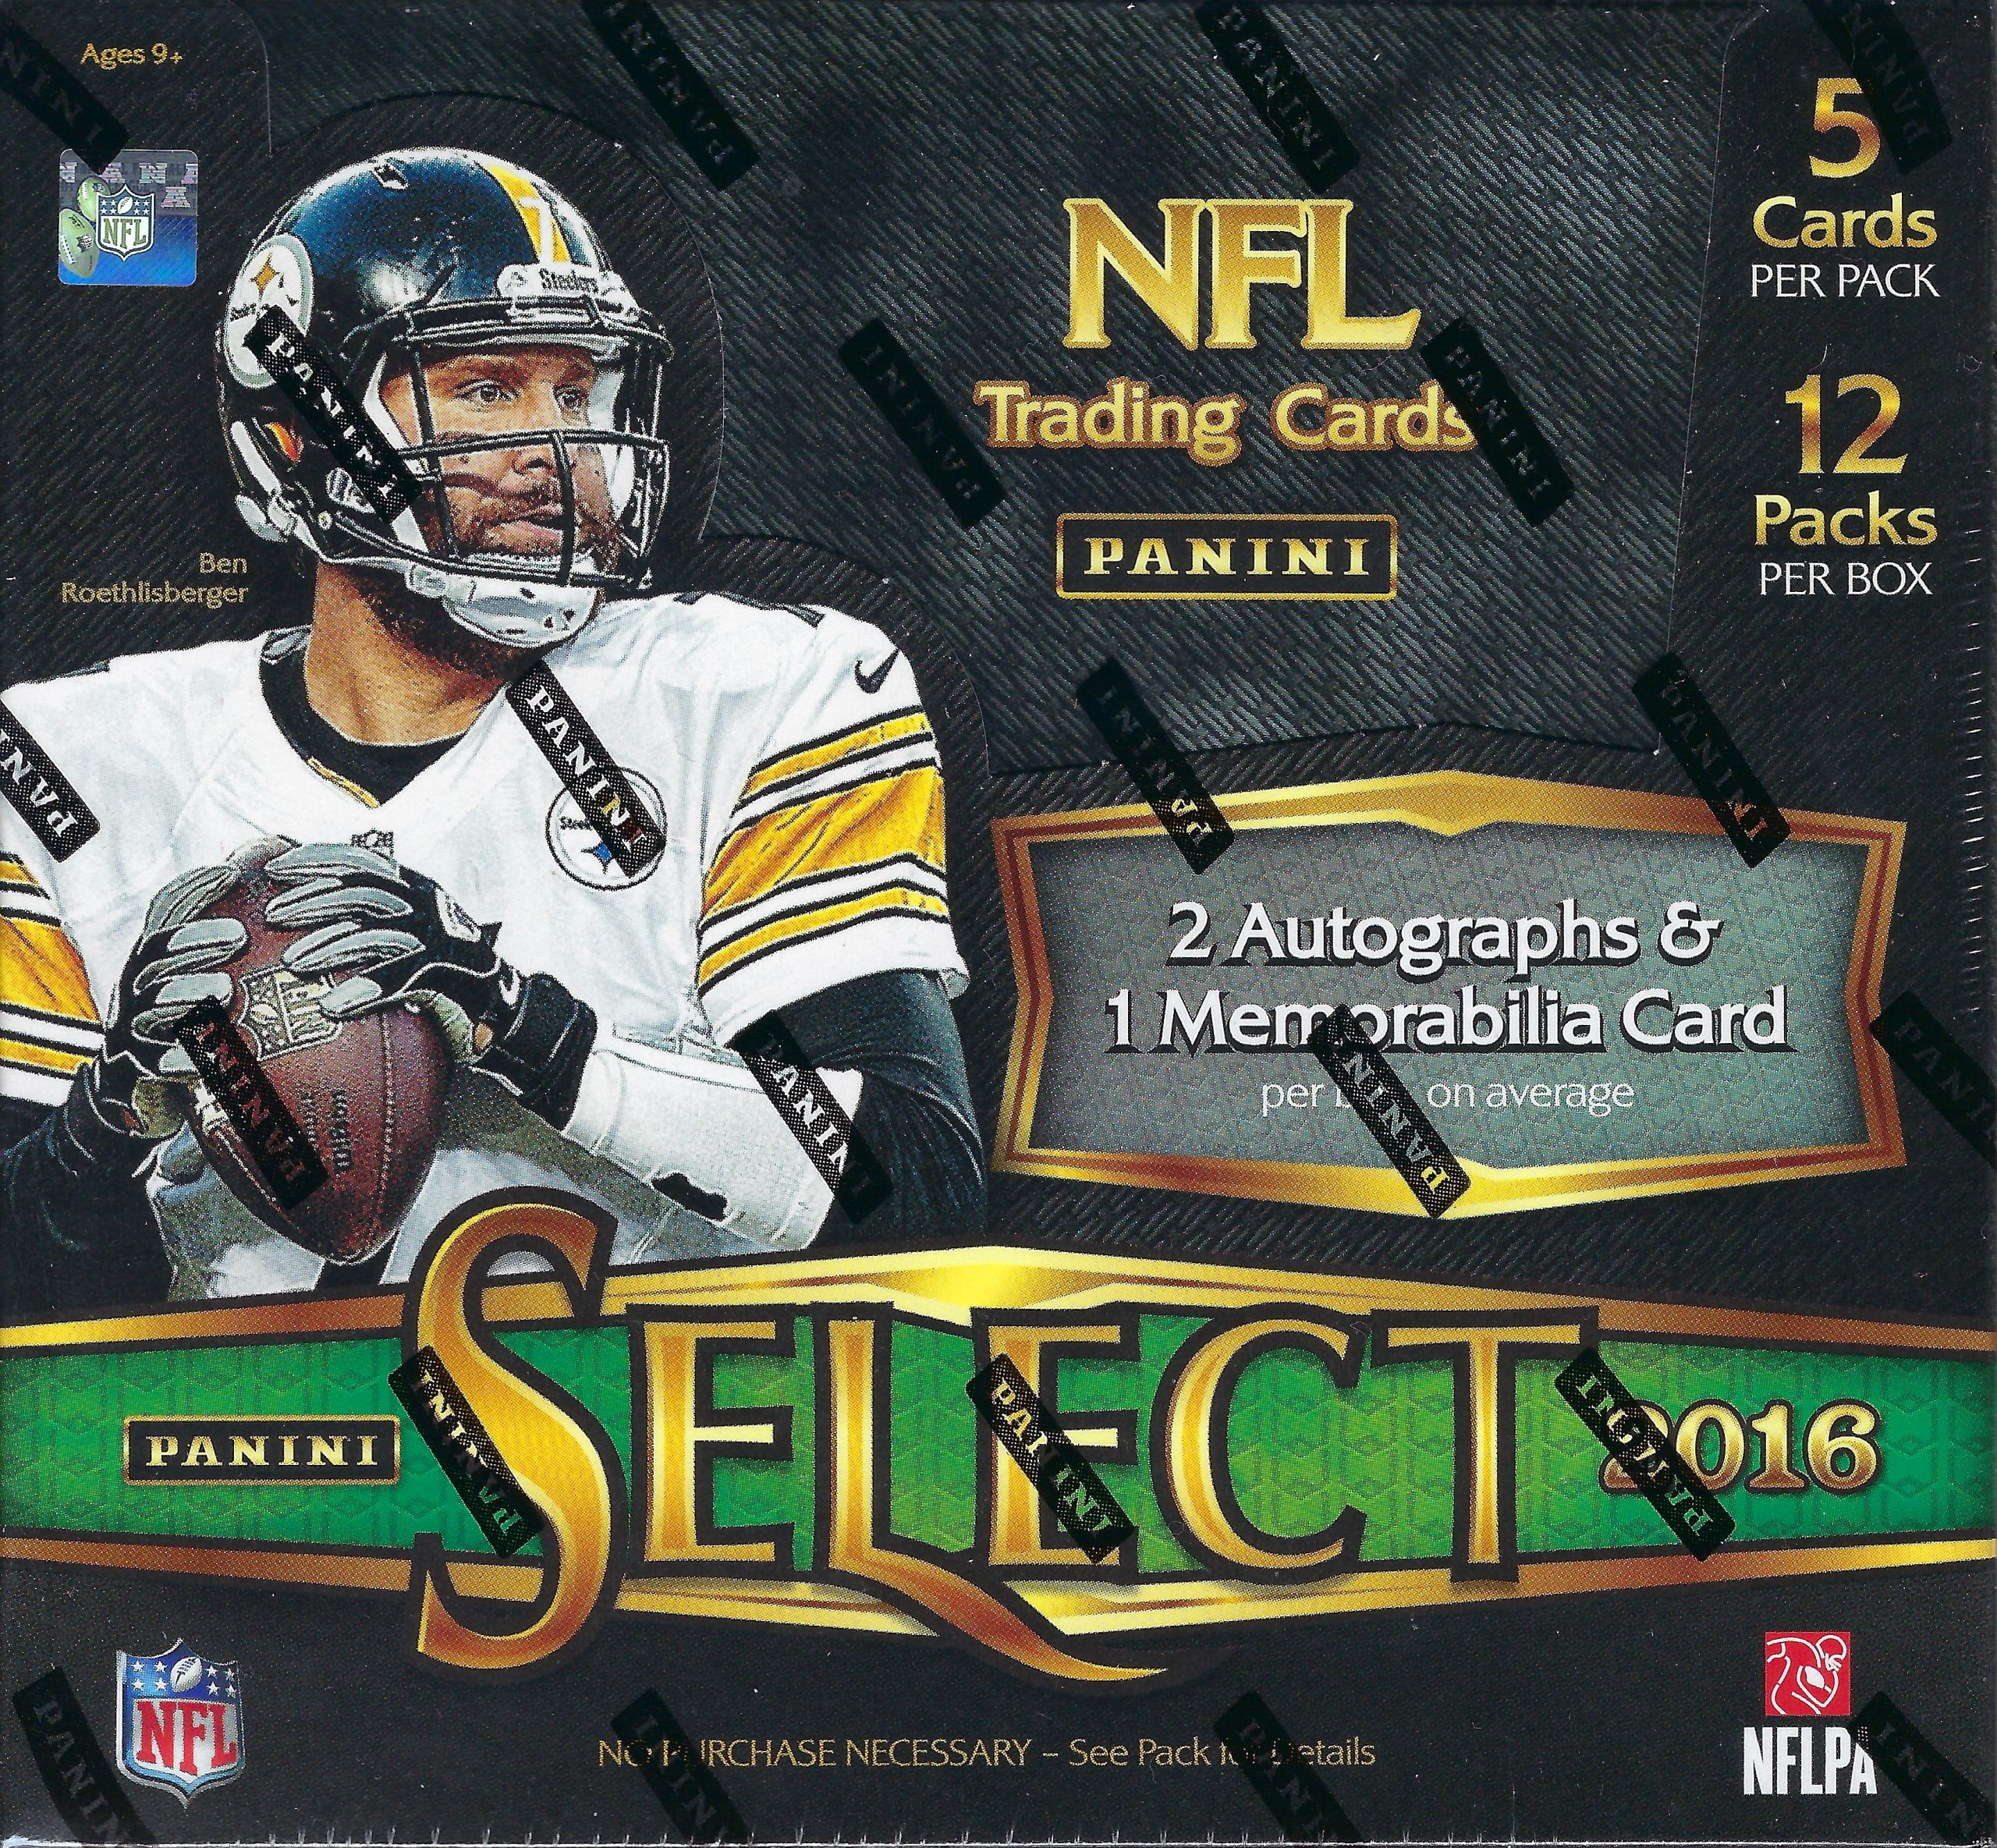 2016 Panini Select Football Hobby Single Box Random Teams #5